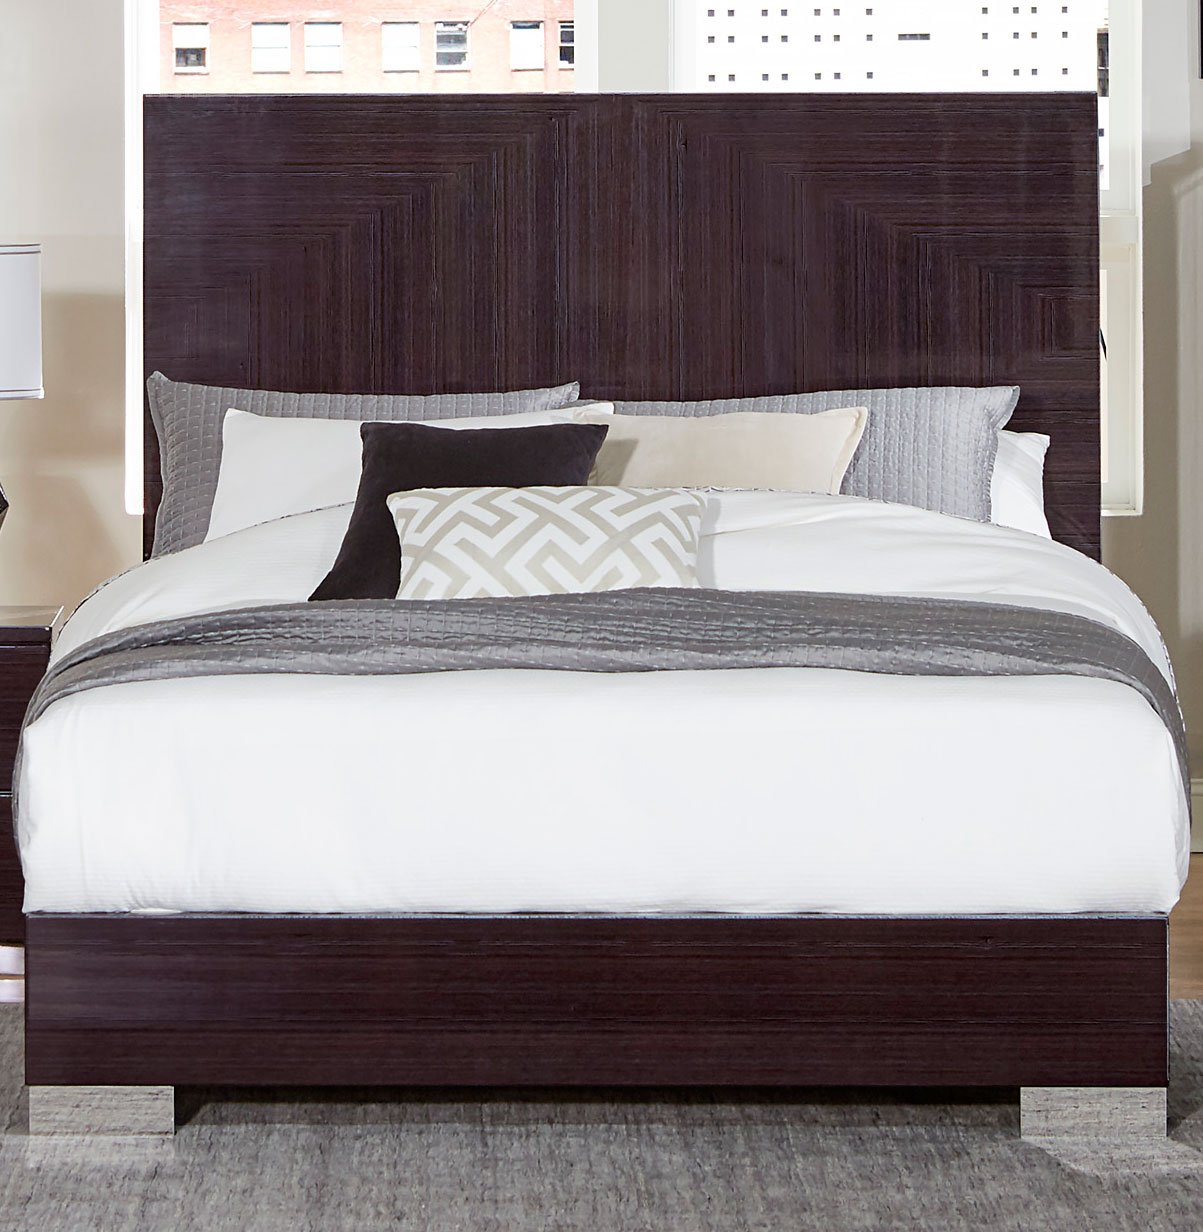 Modern plum brown 6 piece king bedroom set moritz rc - Contemporary king bedroom furniture ...